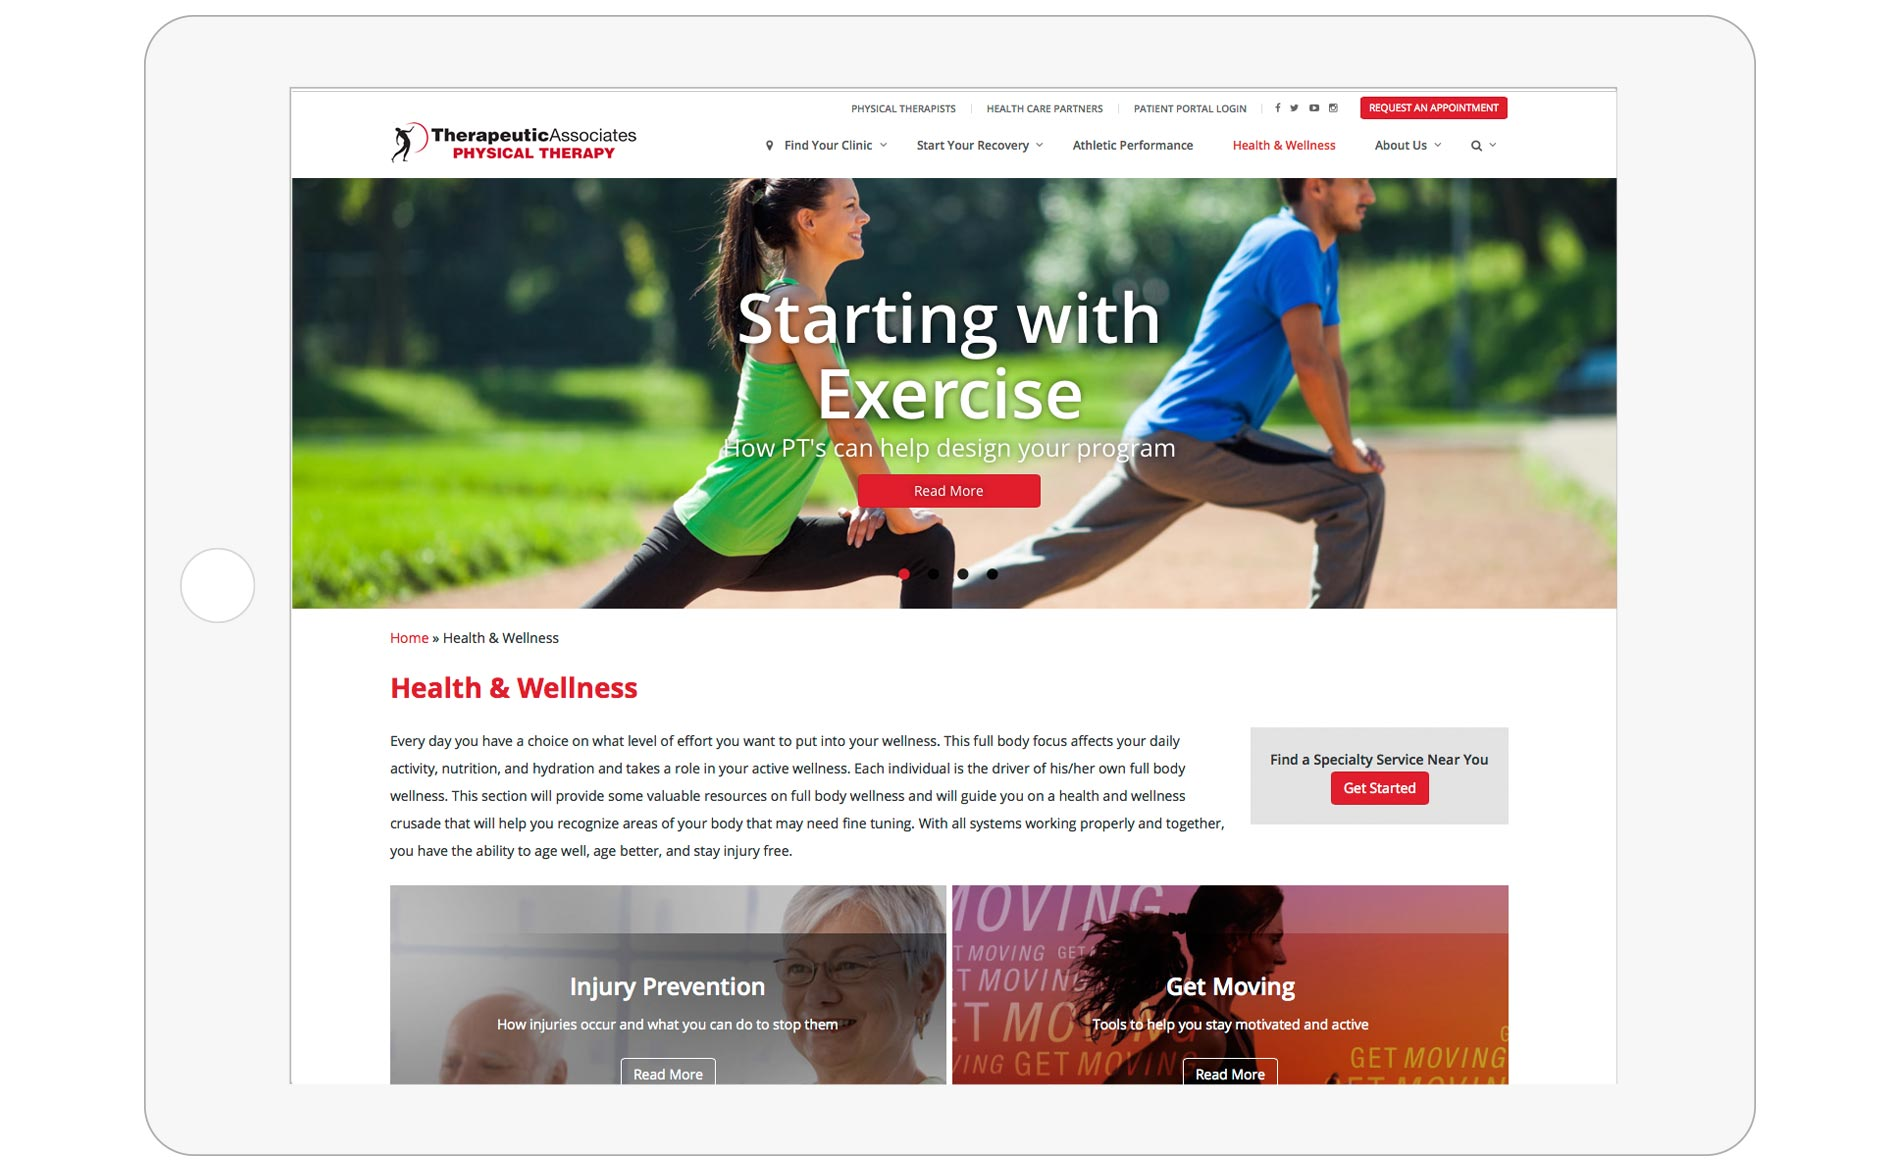 Therapeutic Associates Web Design - Health & Wellness Image